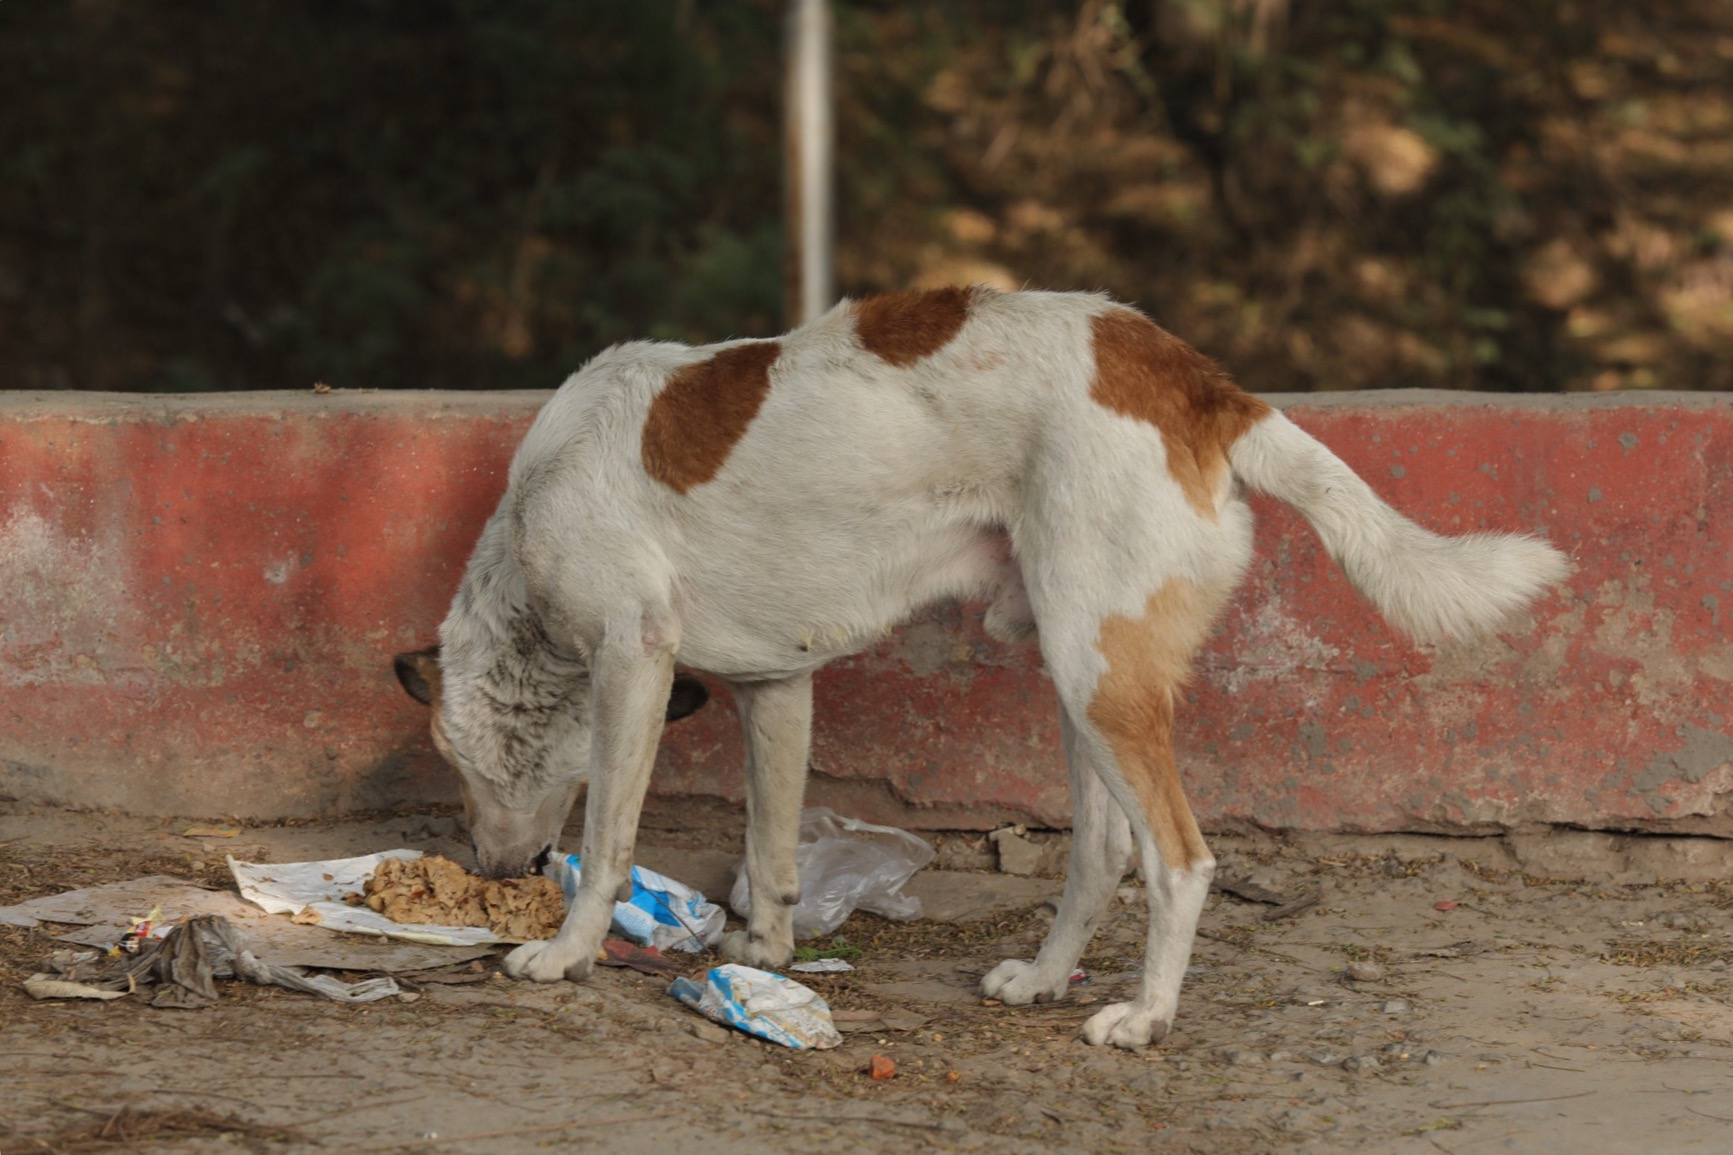 People do put food out for the street dogs although it's obvious they are all riddled with fleas. This one looks quite good but so many are clearly full of mange :(